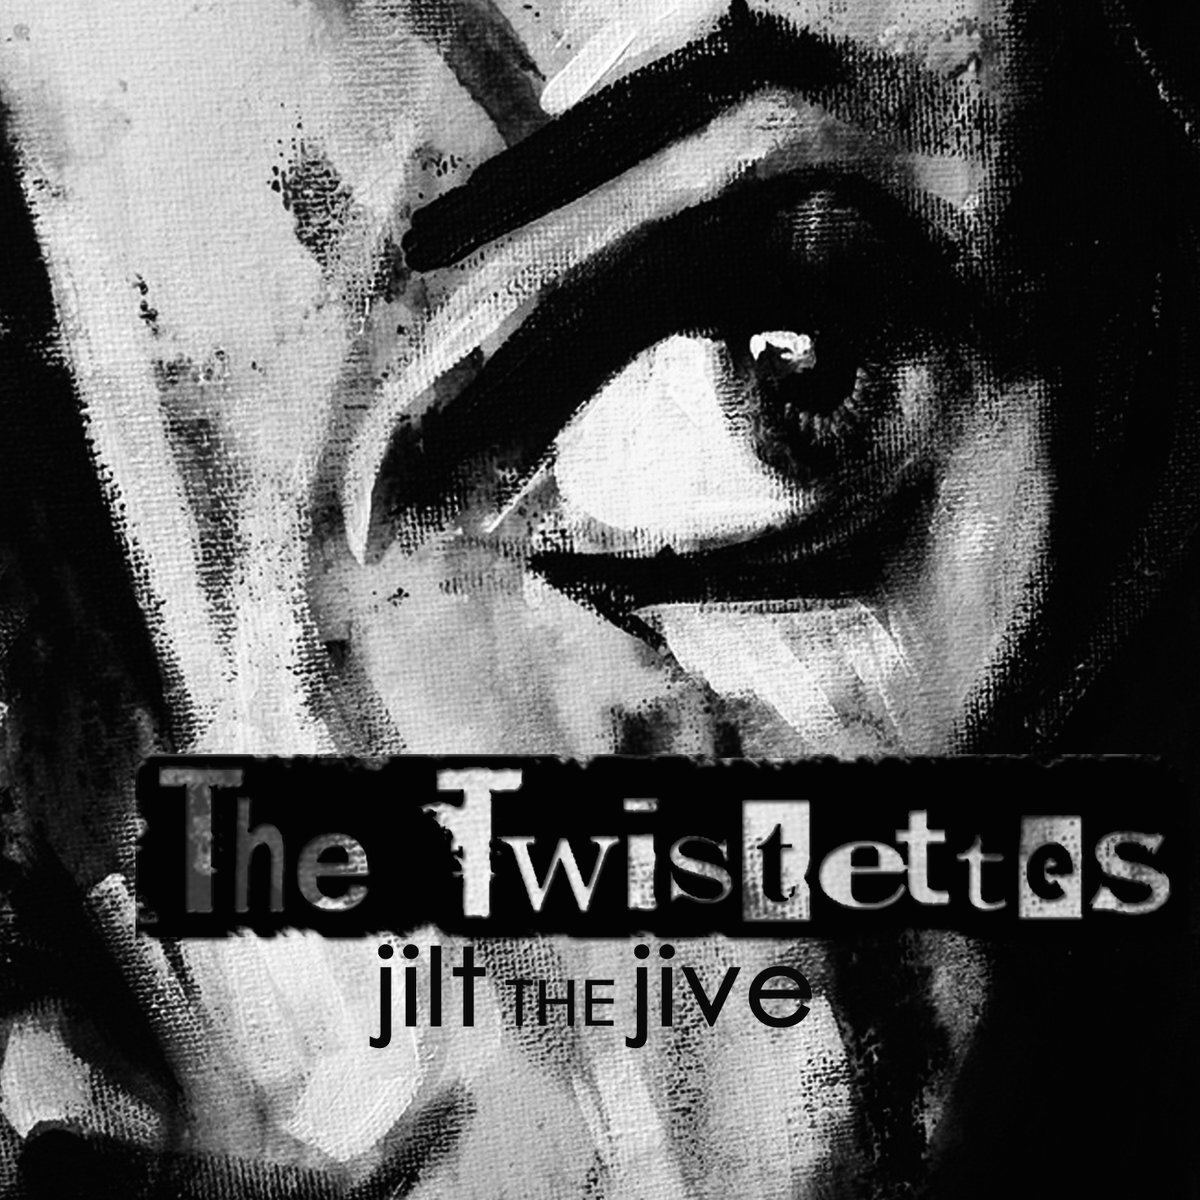 """Greyscale. The album cover for Jilt the Jive. A close-up of a person's face angled slightly to the right, painted on a black canvas background. The phrase """"The Twistettes jilt the jive"""" is written across the painting."""